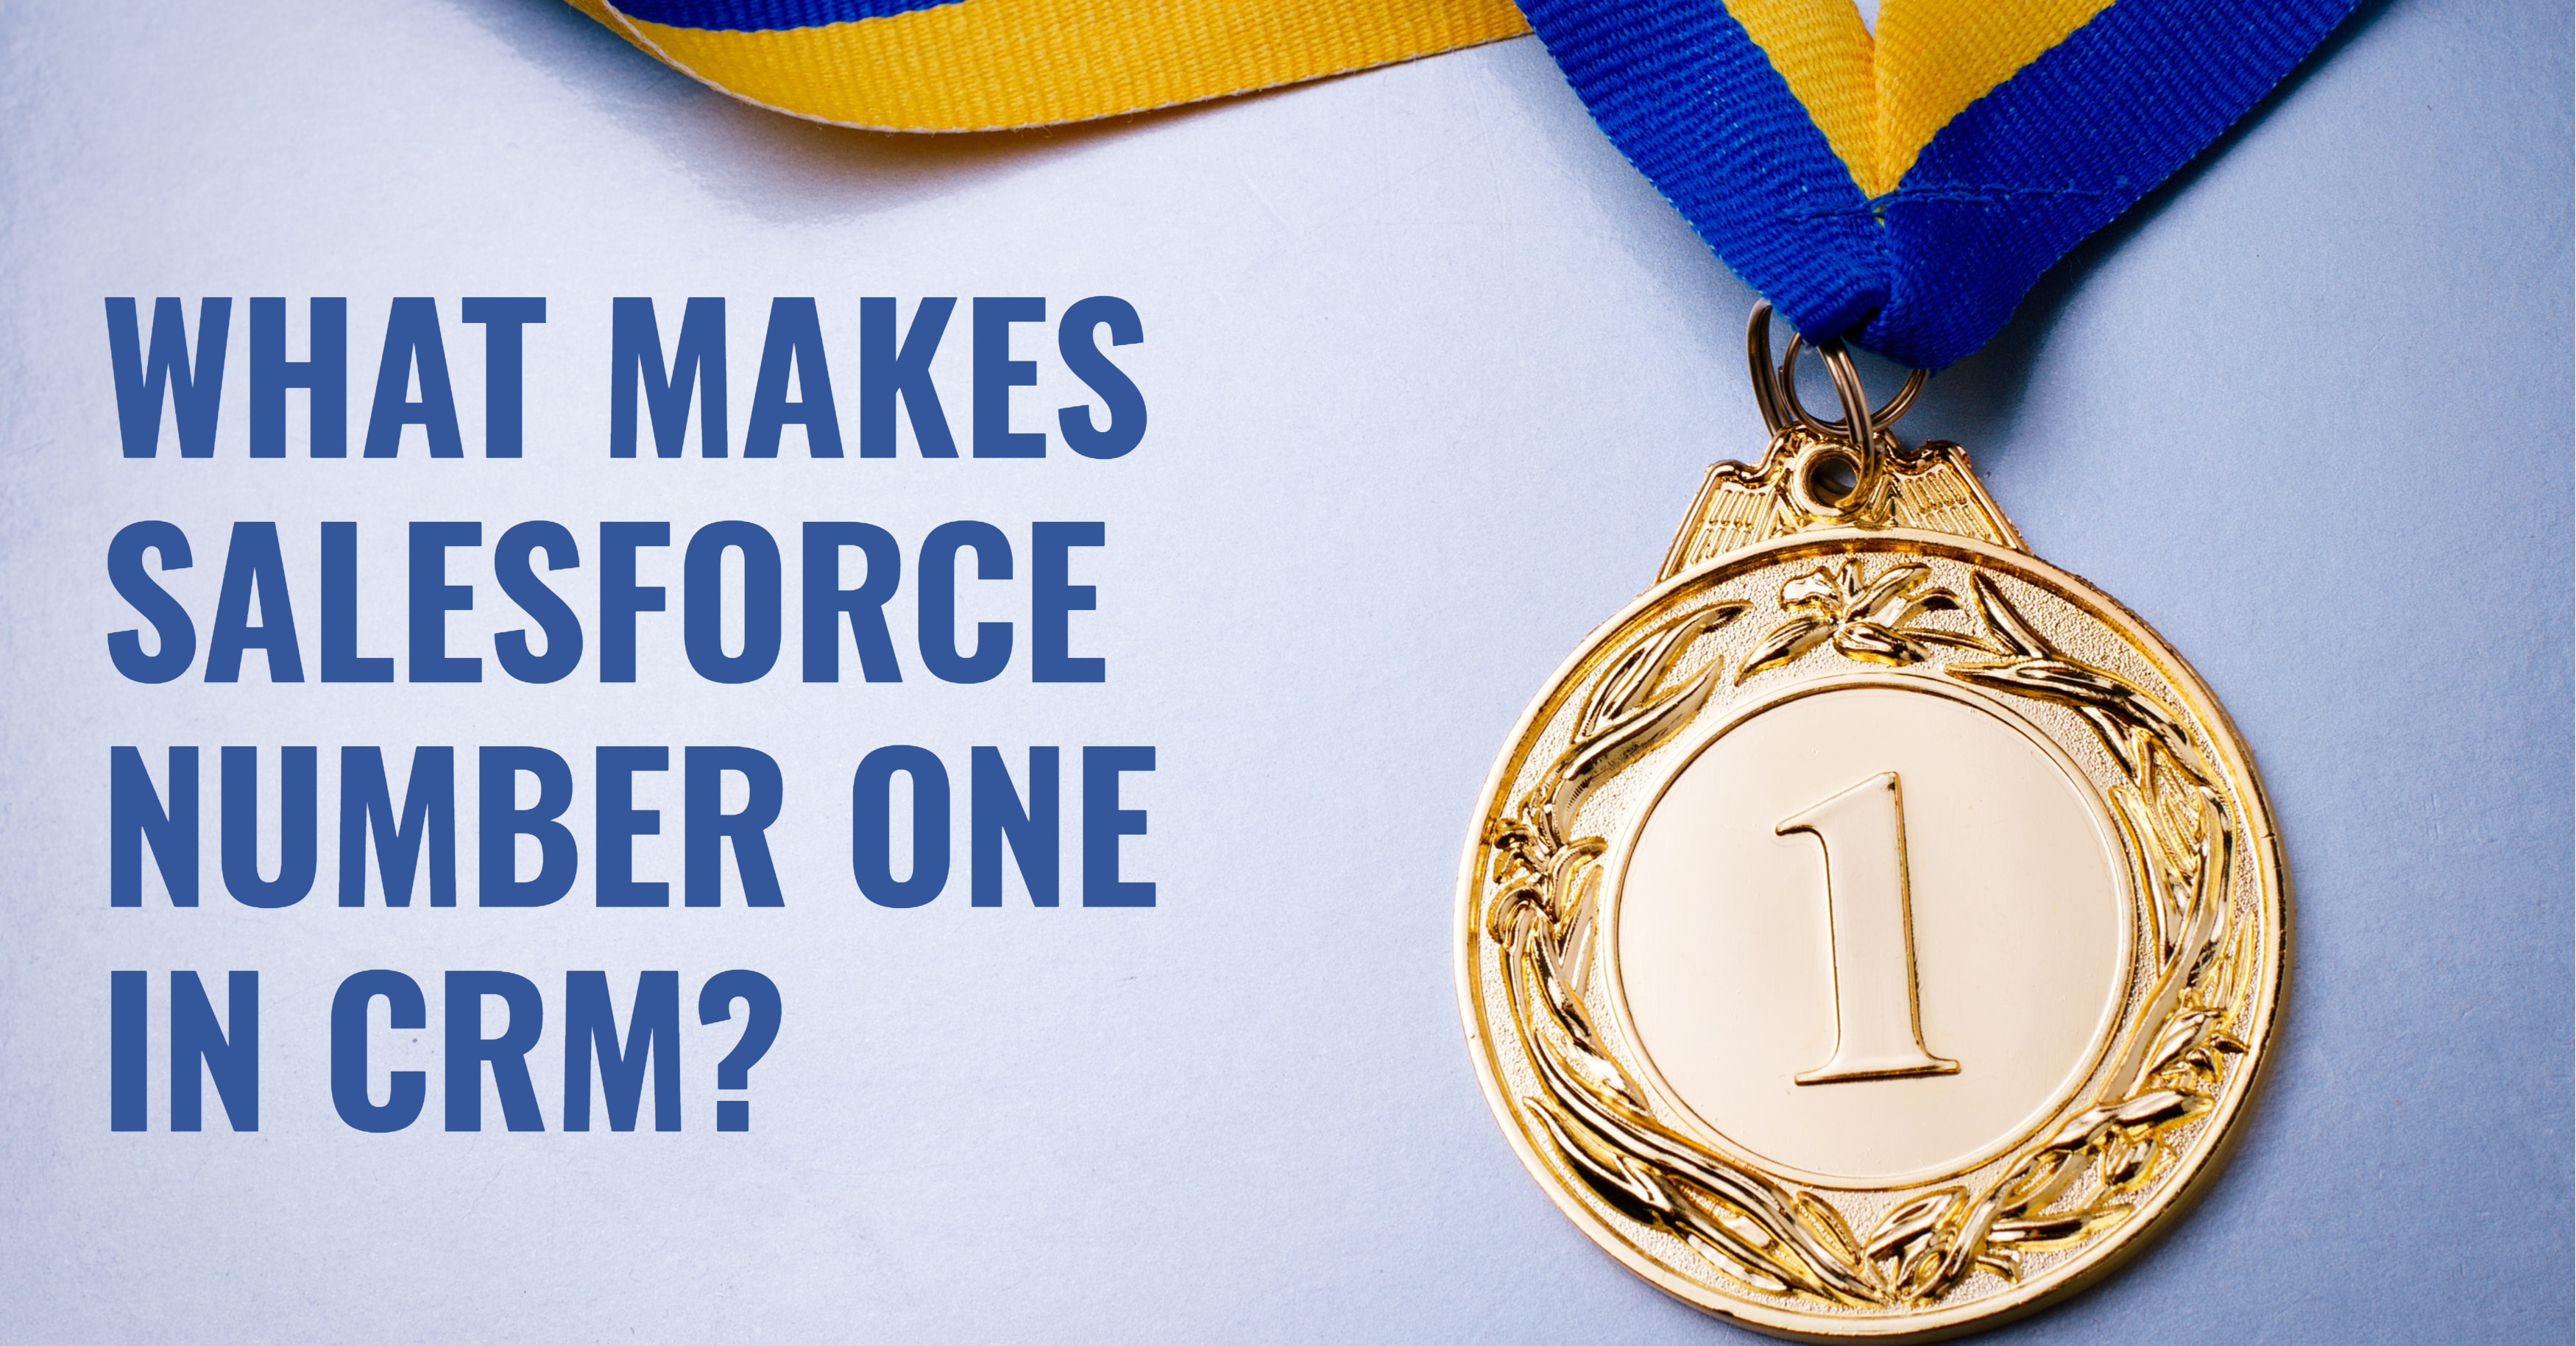 What Makes Salesforce Number One in CRM?